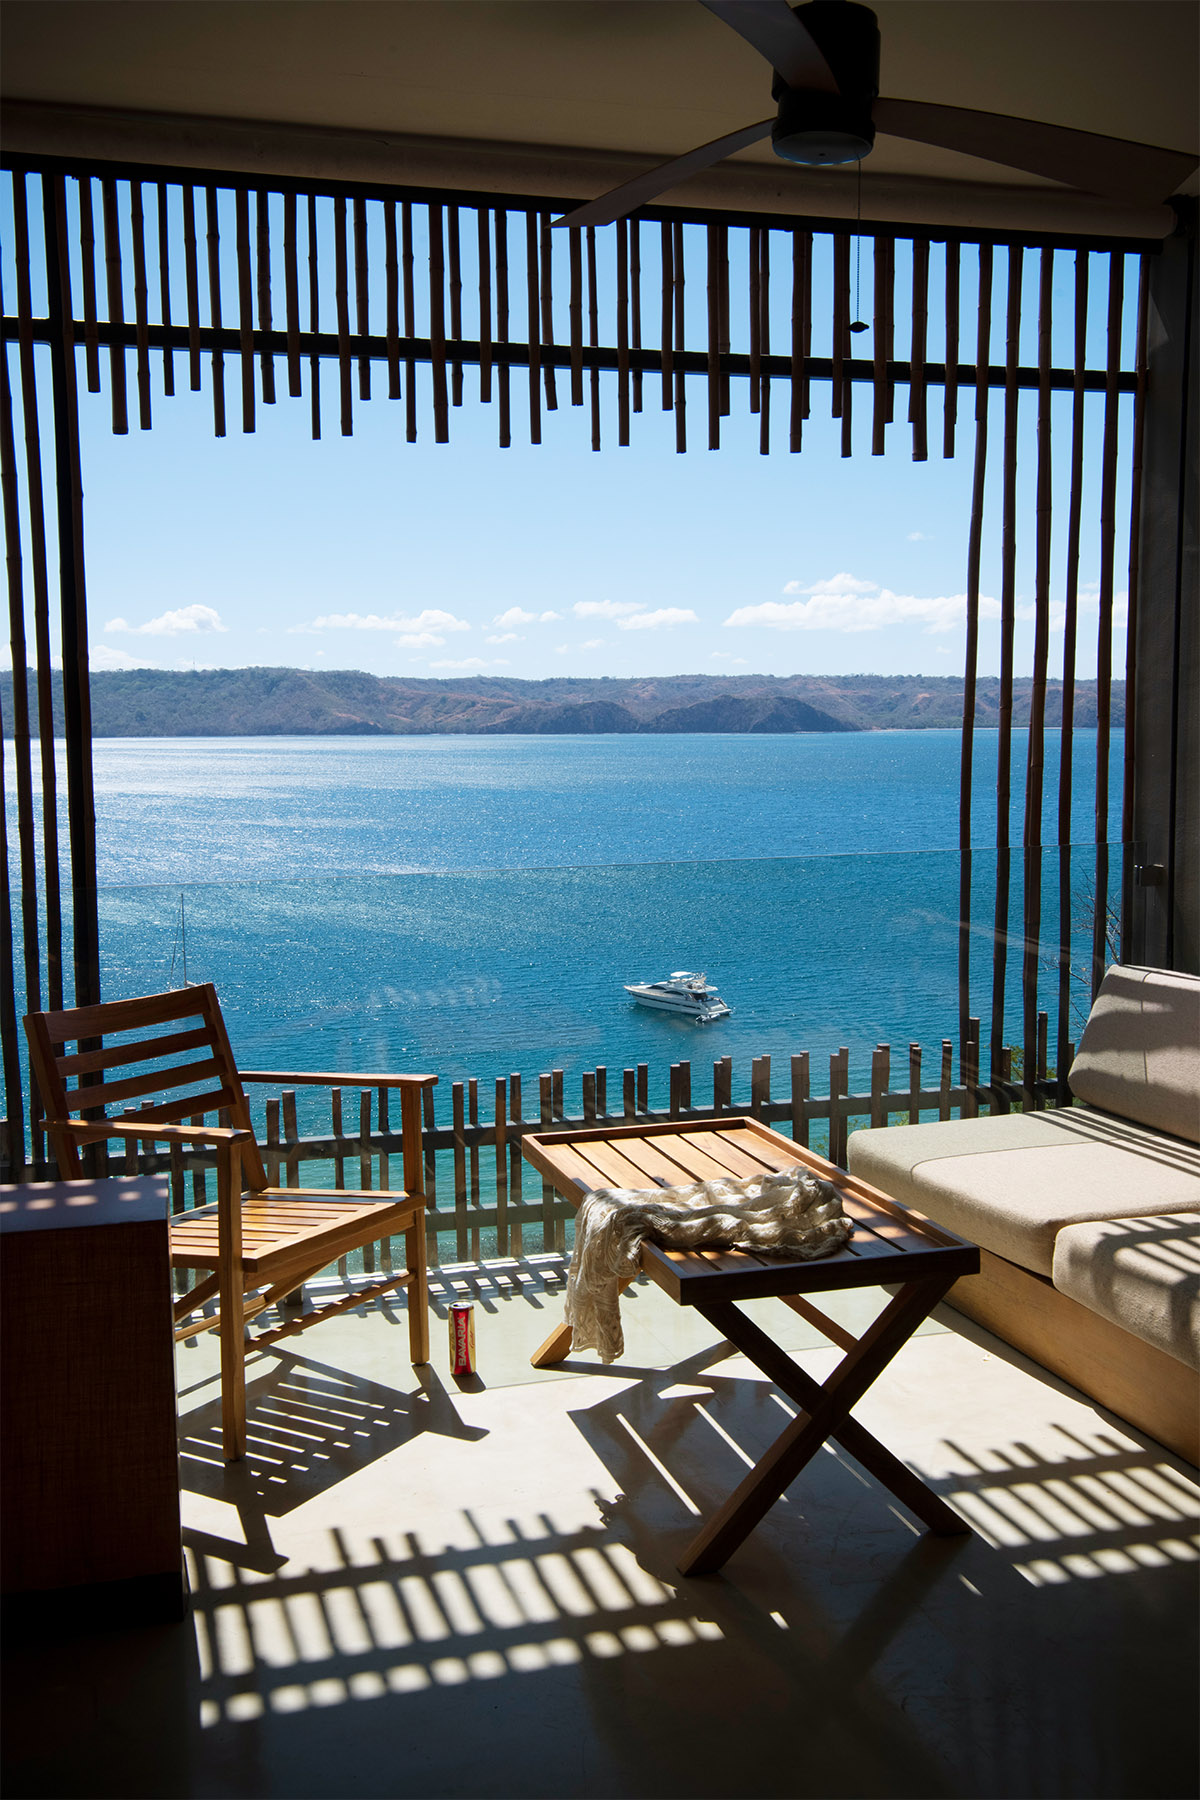 Peninsula Papagayo Costa Rica balcony view